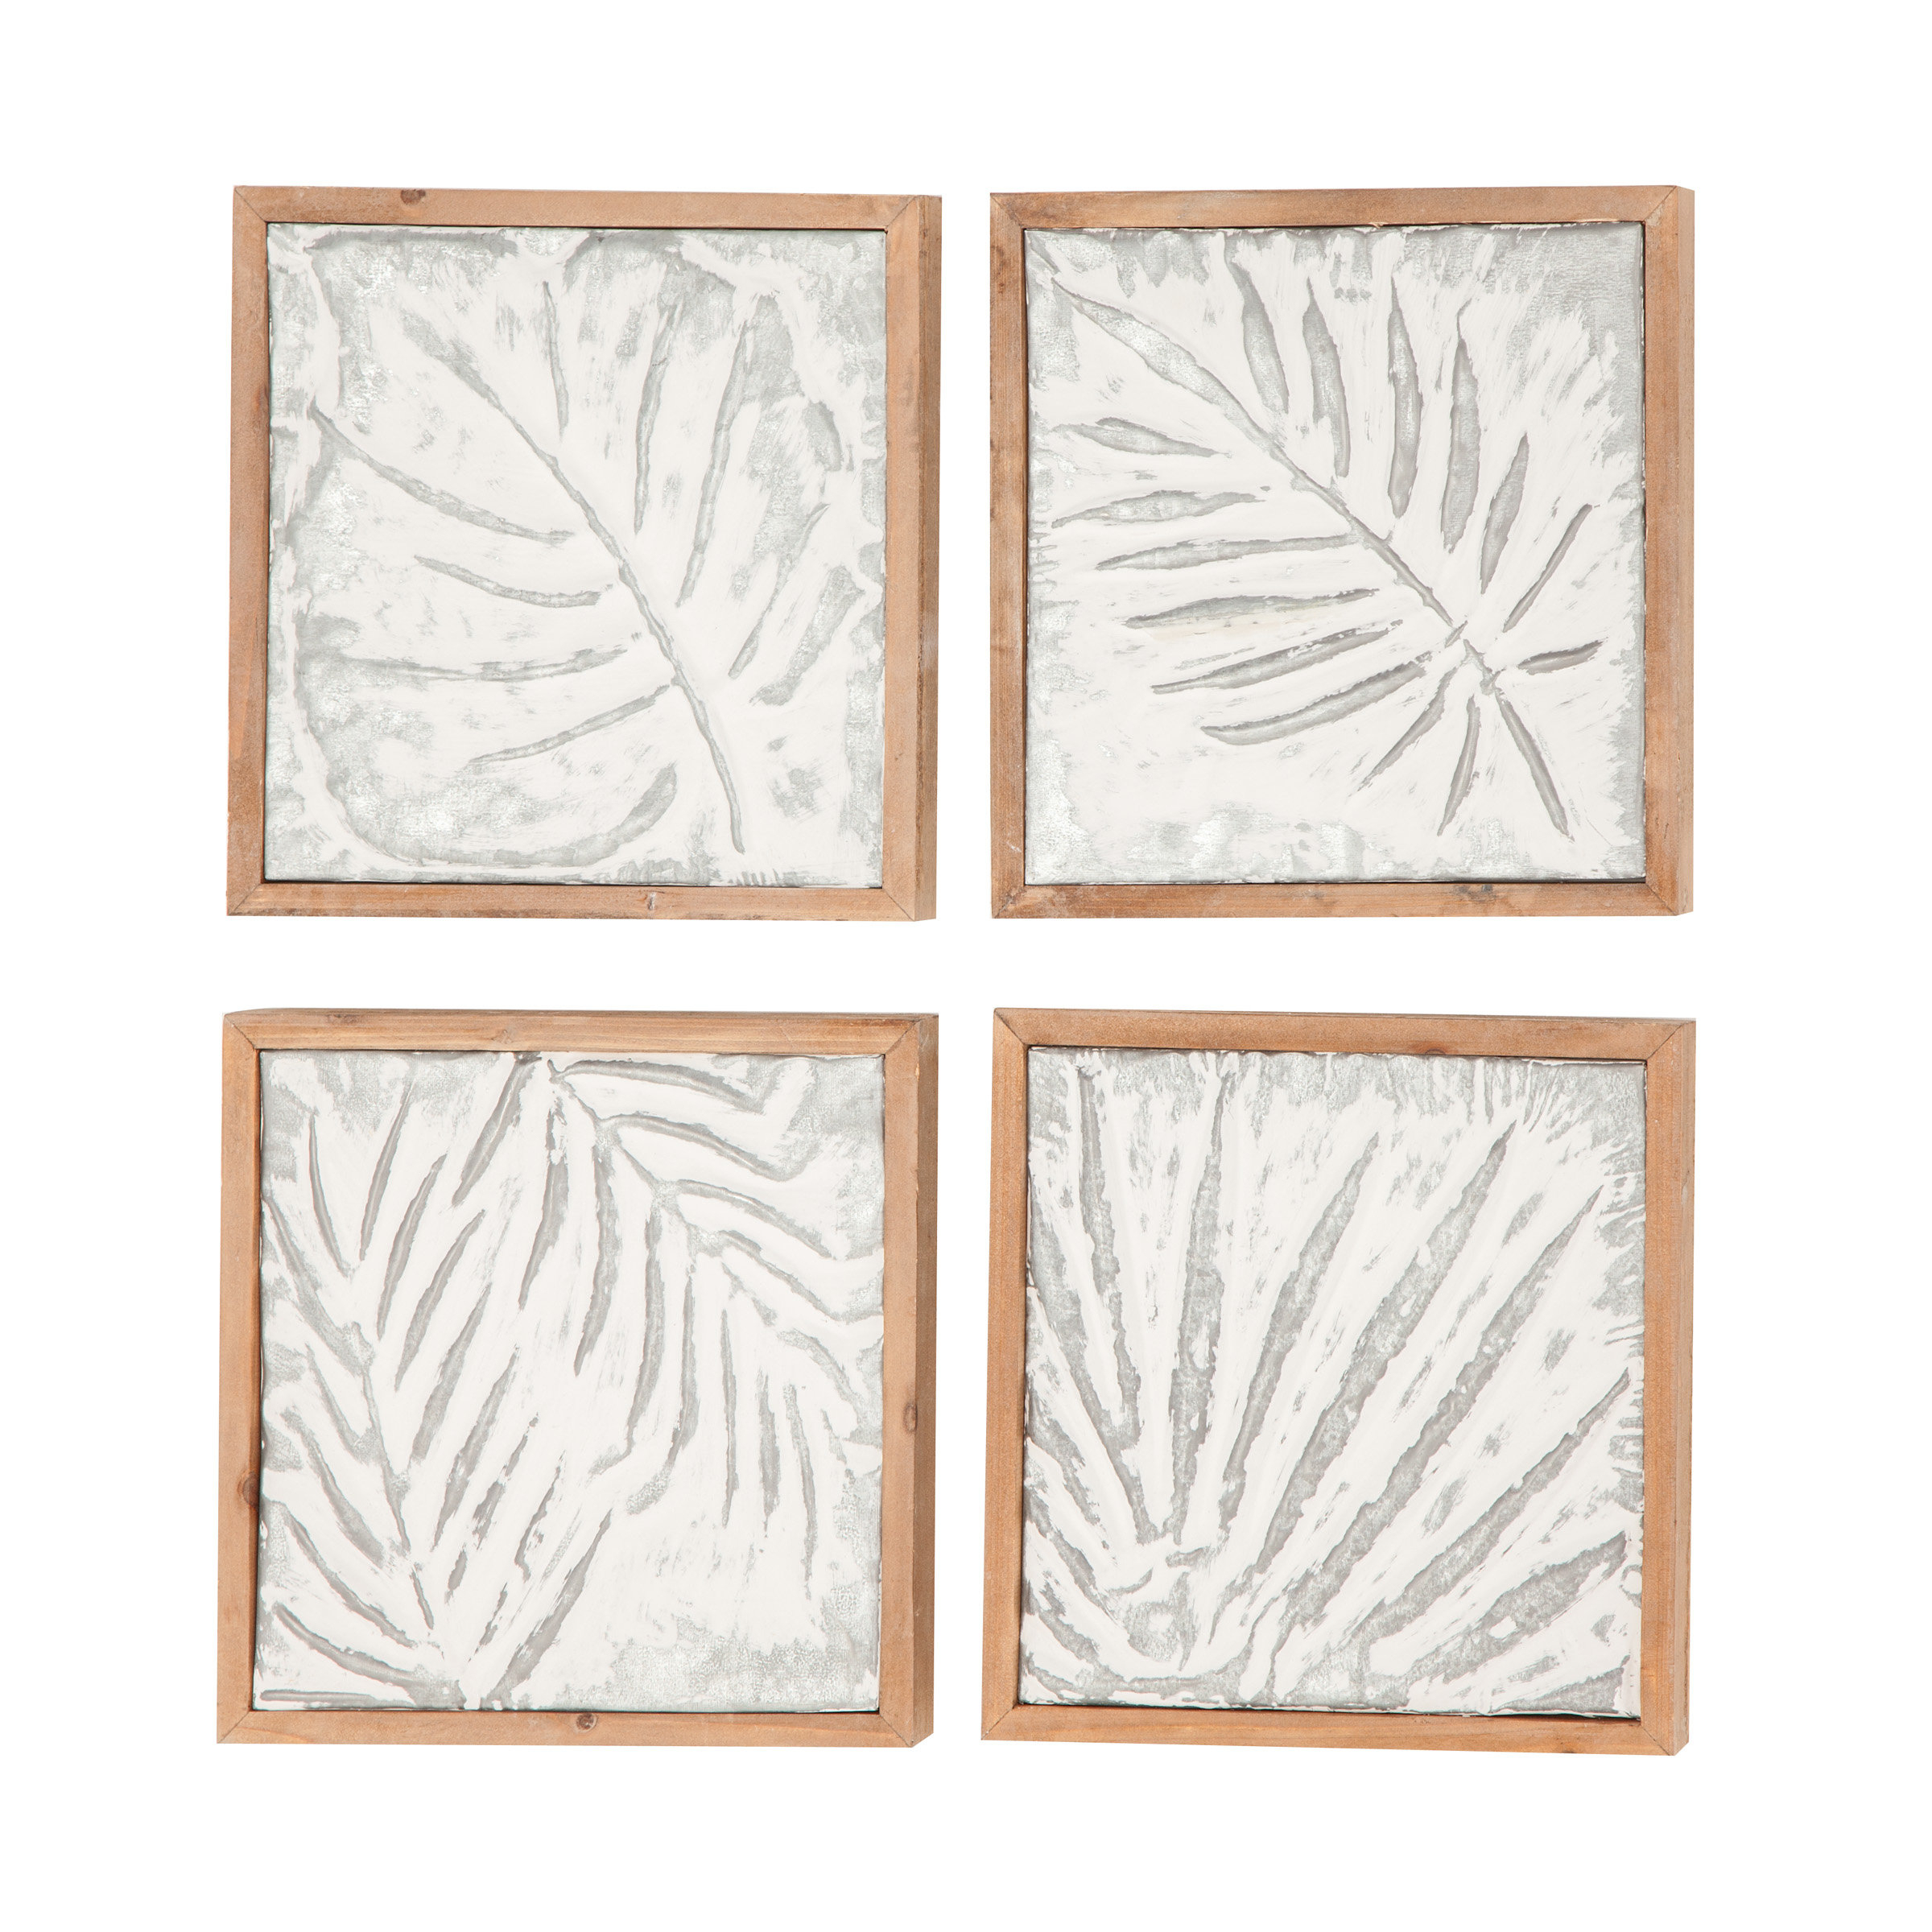 Bungalow Rose Goodfellow 4 Piece Wood Leaf Wall Decor Set & Reviews Regarding Current 4 Piece Metal Wall Plaque Decor Sets (Gallery 4 of 20)